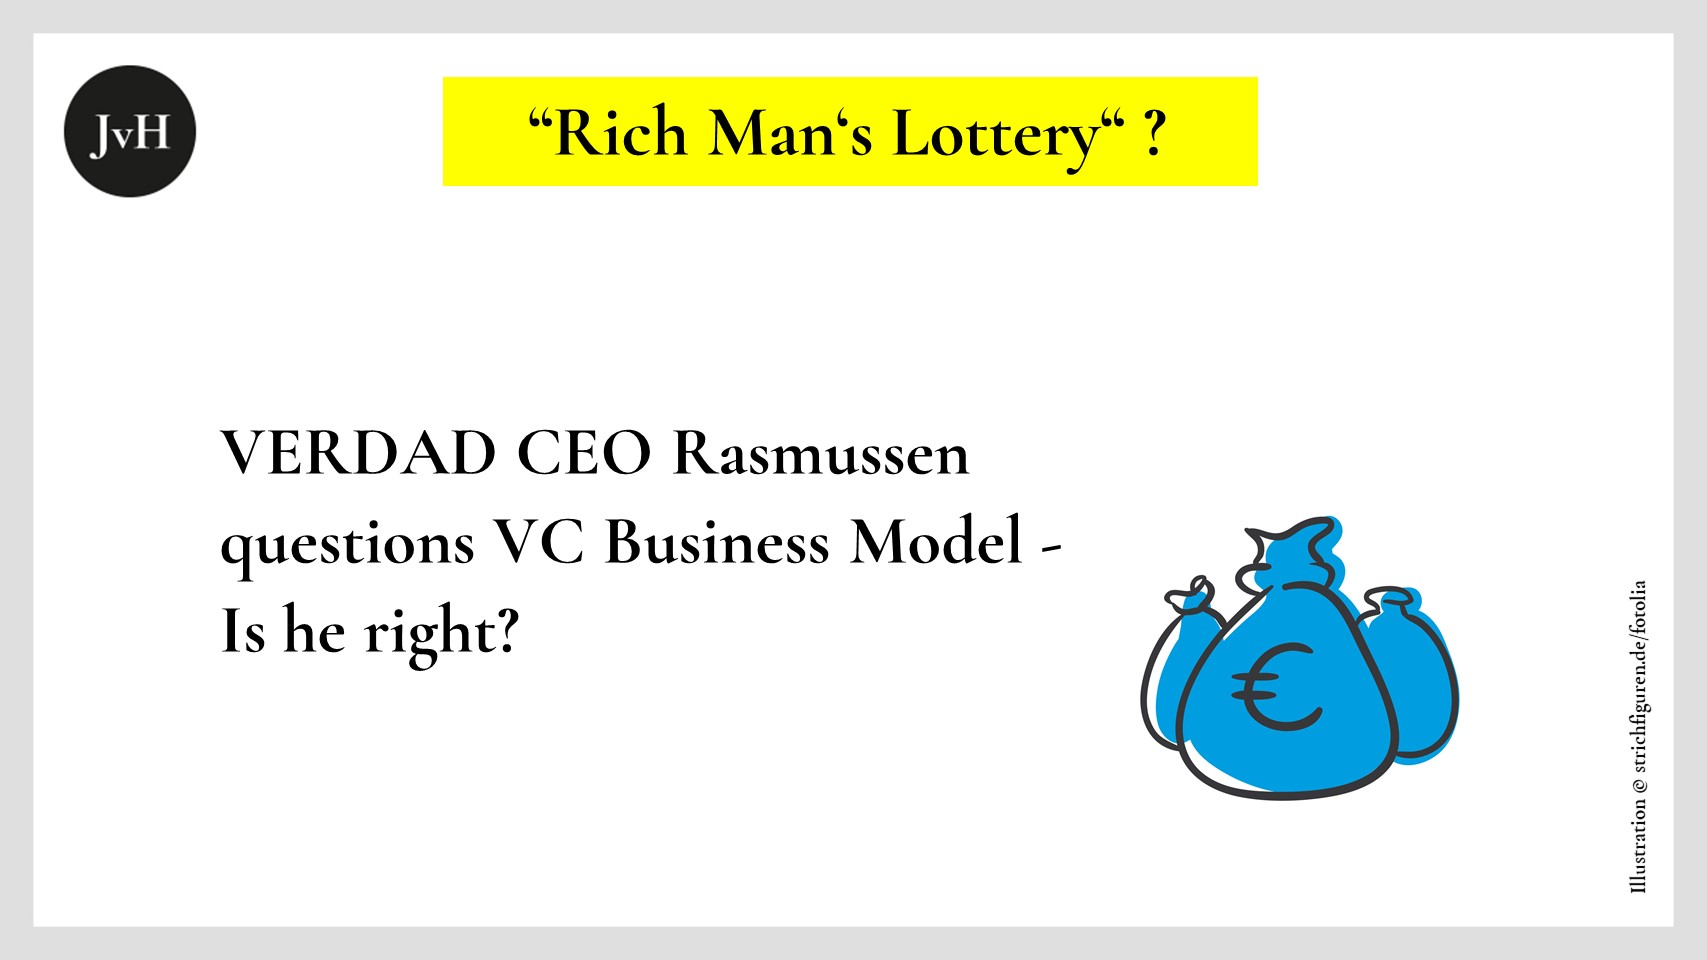 Rich Man's Lottery, is Rasmussen right?